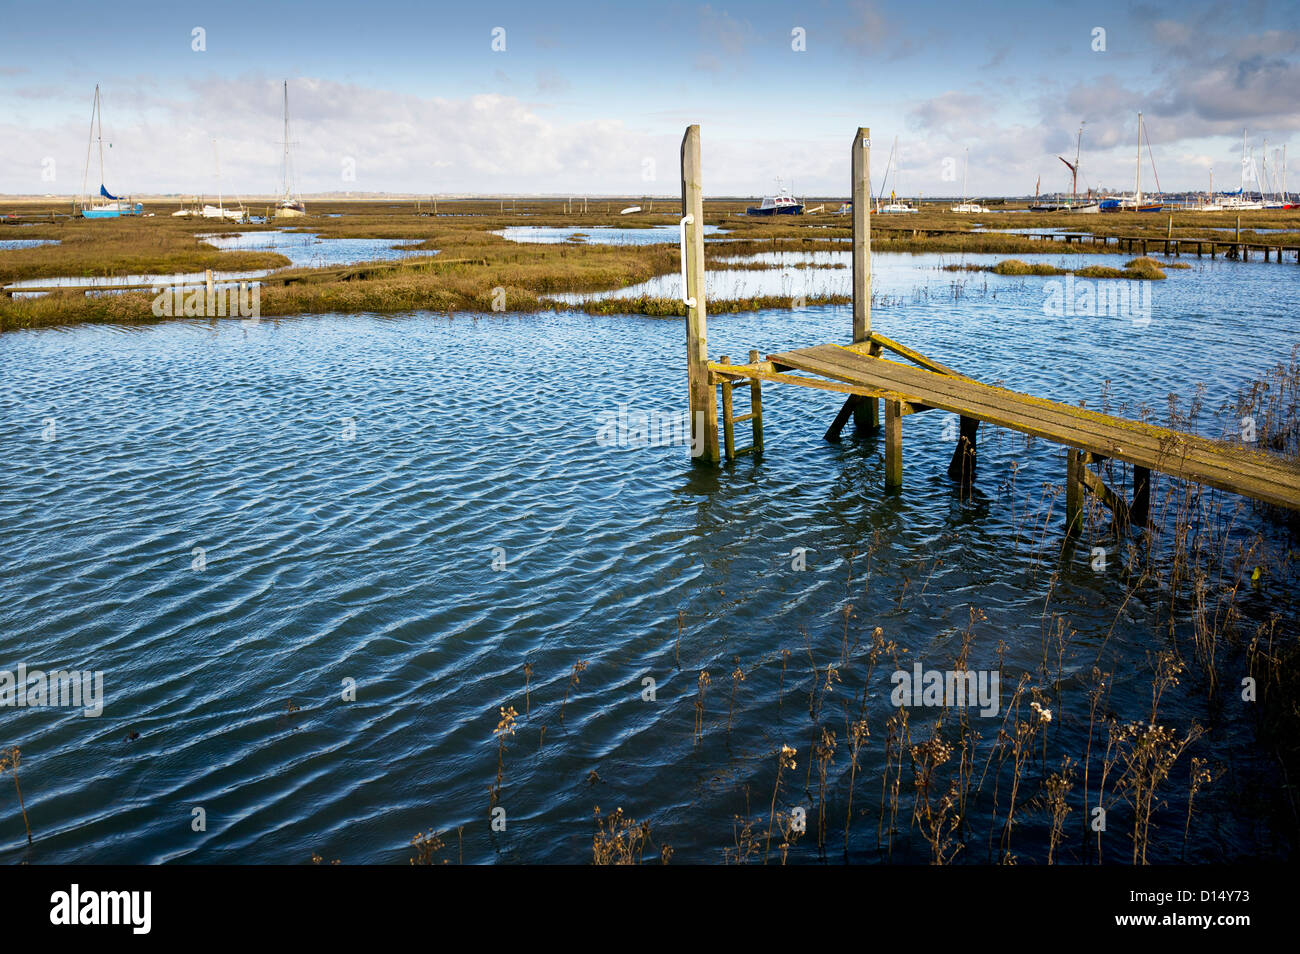 High tide at Tollesbury Saltings in Essex. Stock Photo